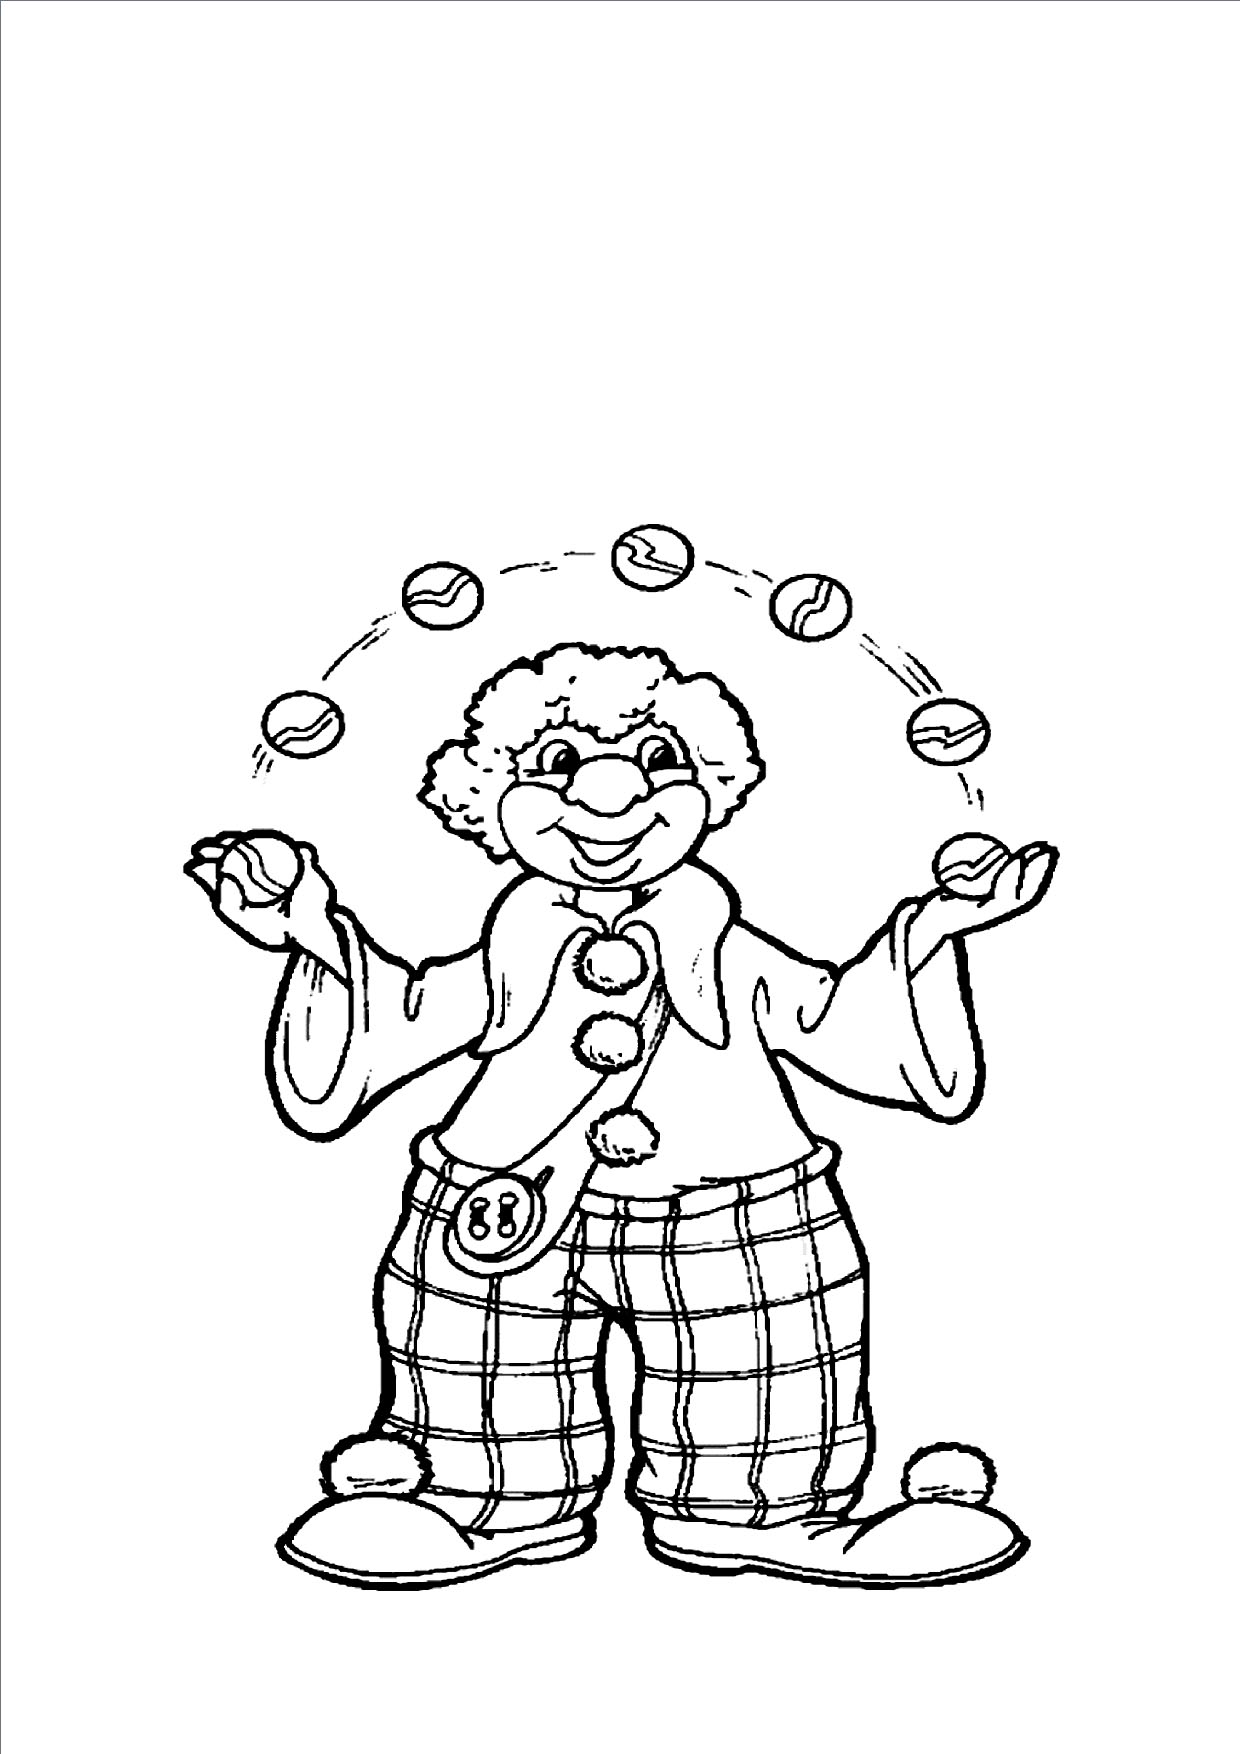 clown coloring pages free printable - photo#25